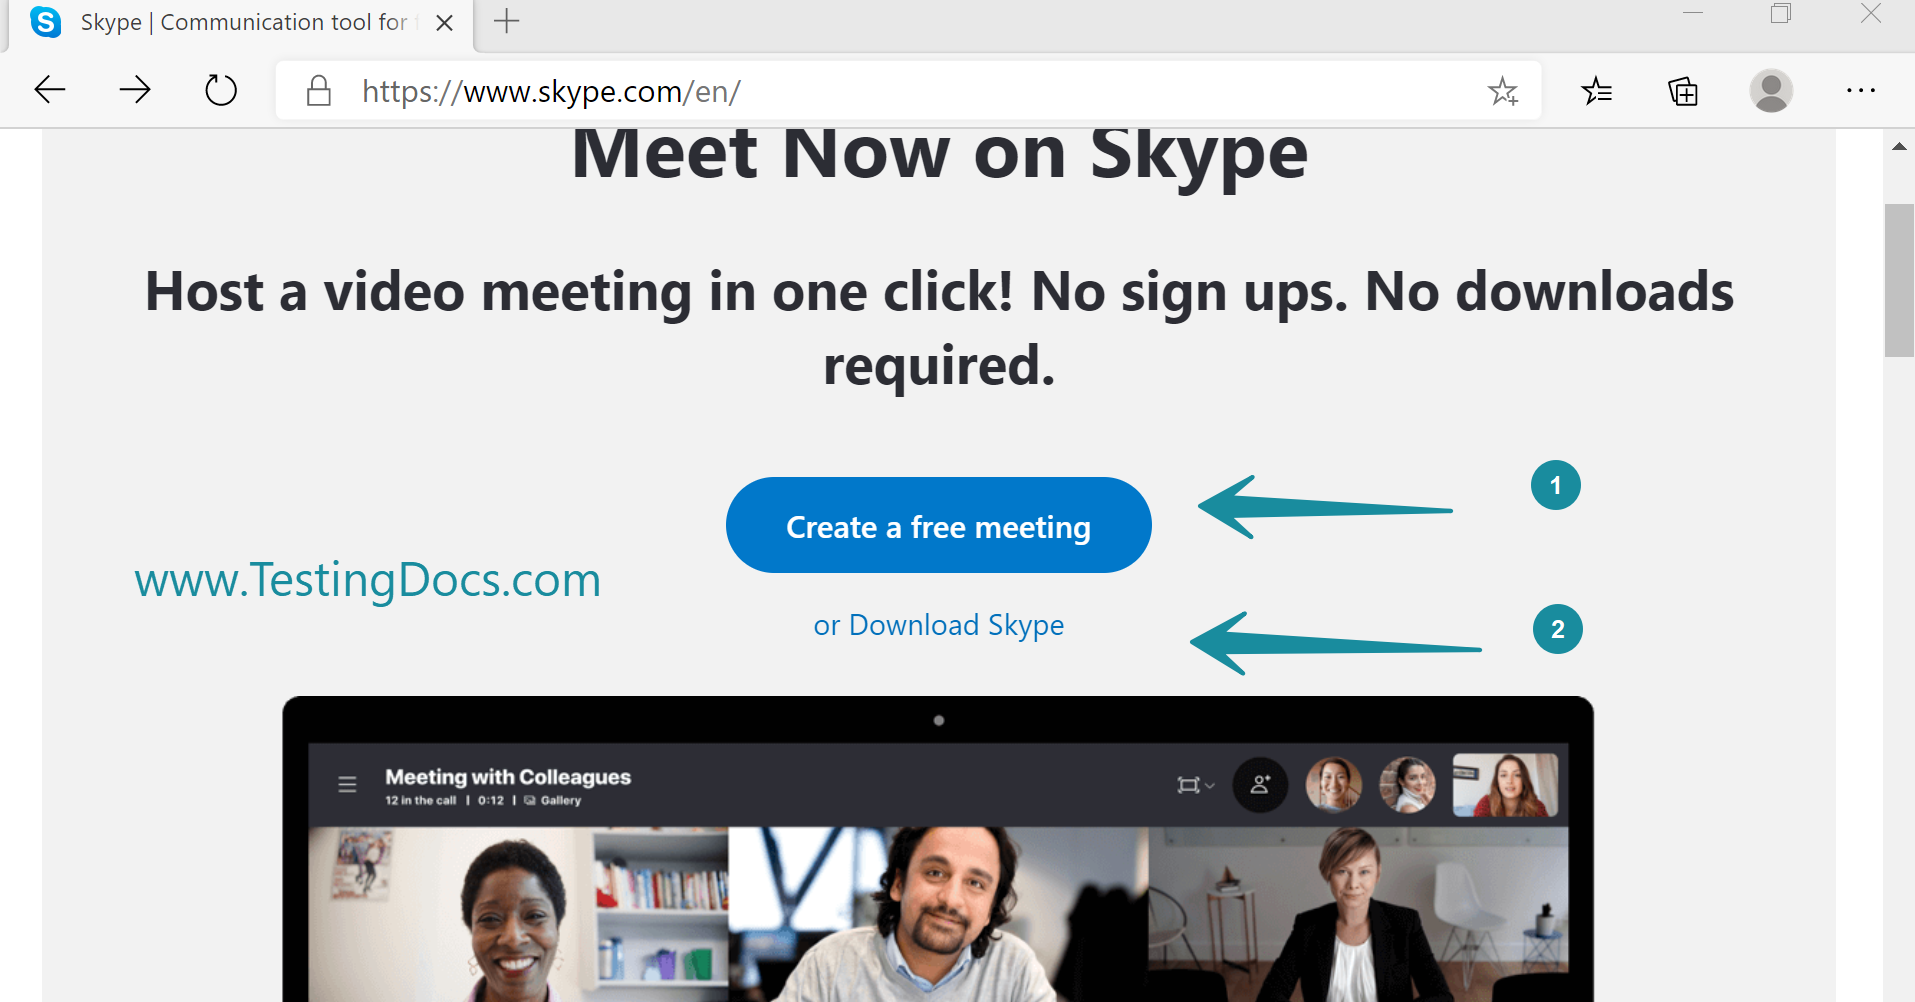 How to install Skype on Windows 10